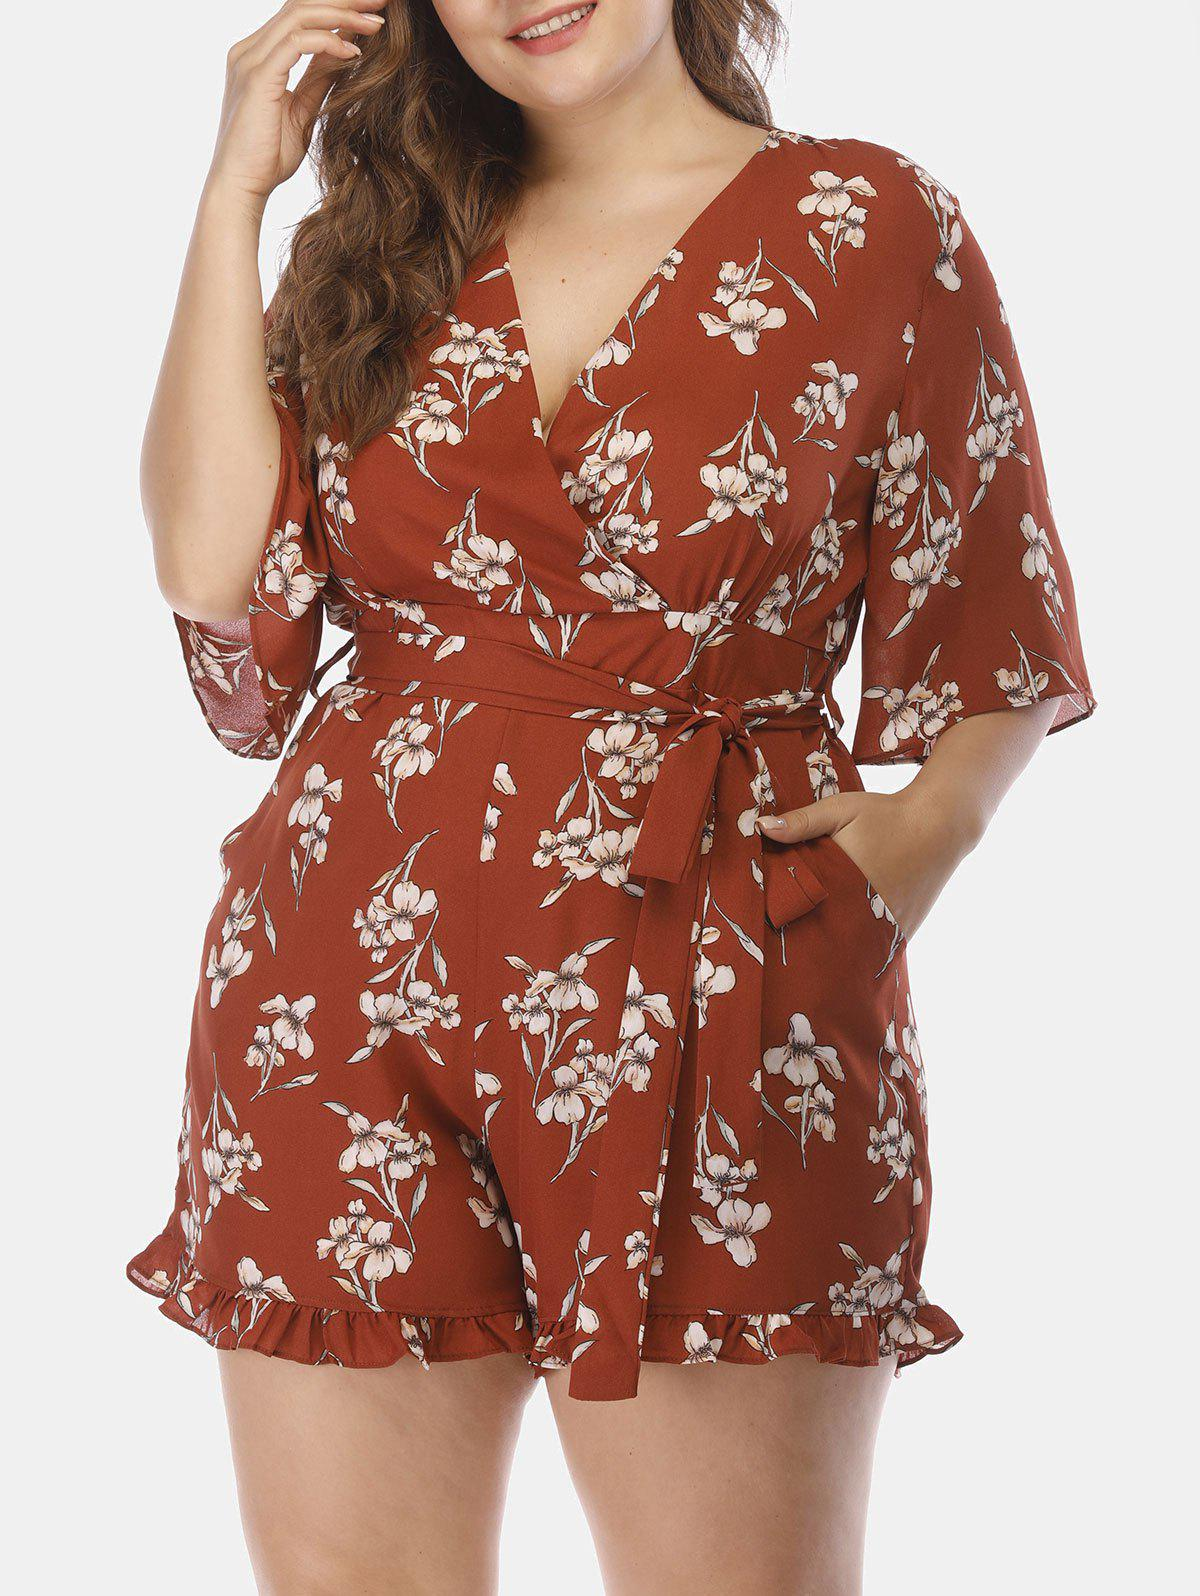 8c0c78bef8c9 2019 Plus Size Pockets Floral Surplice Romper With Ruffles